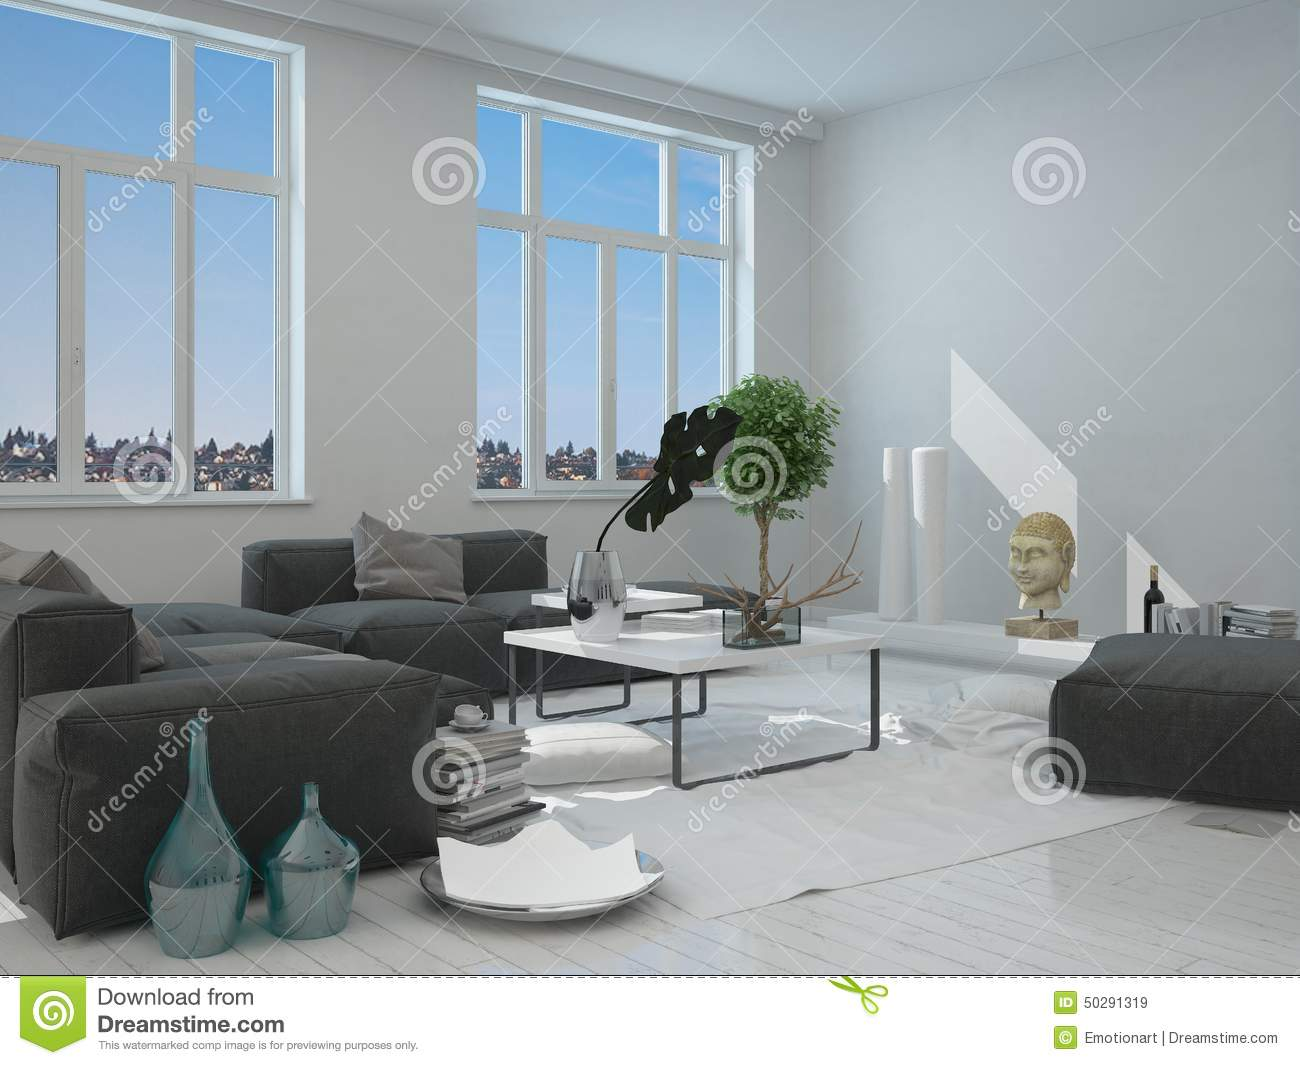 Gray and white furniture inside a house stock illustration for Gray and white living room furniture